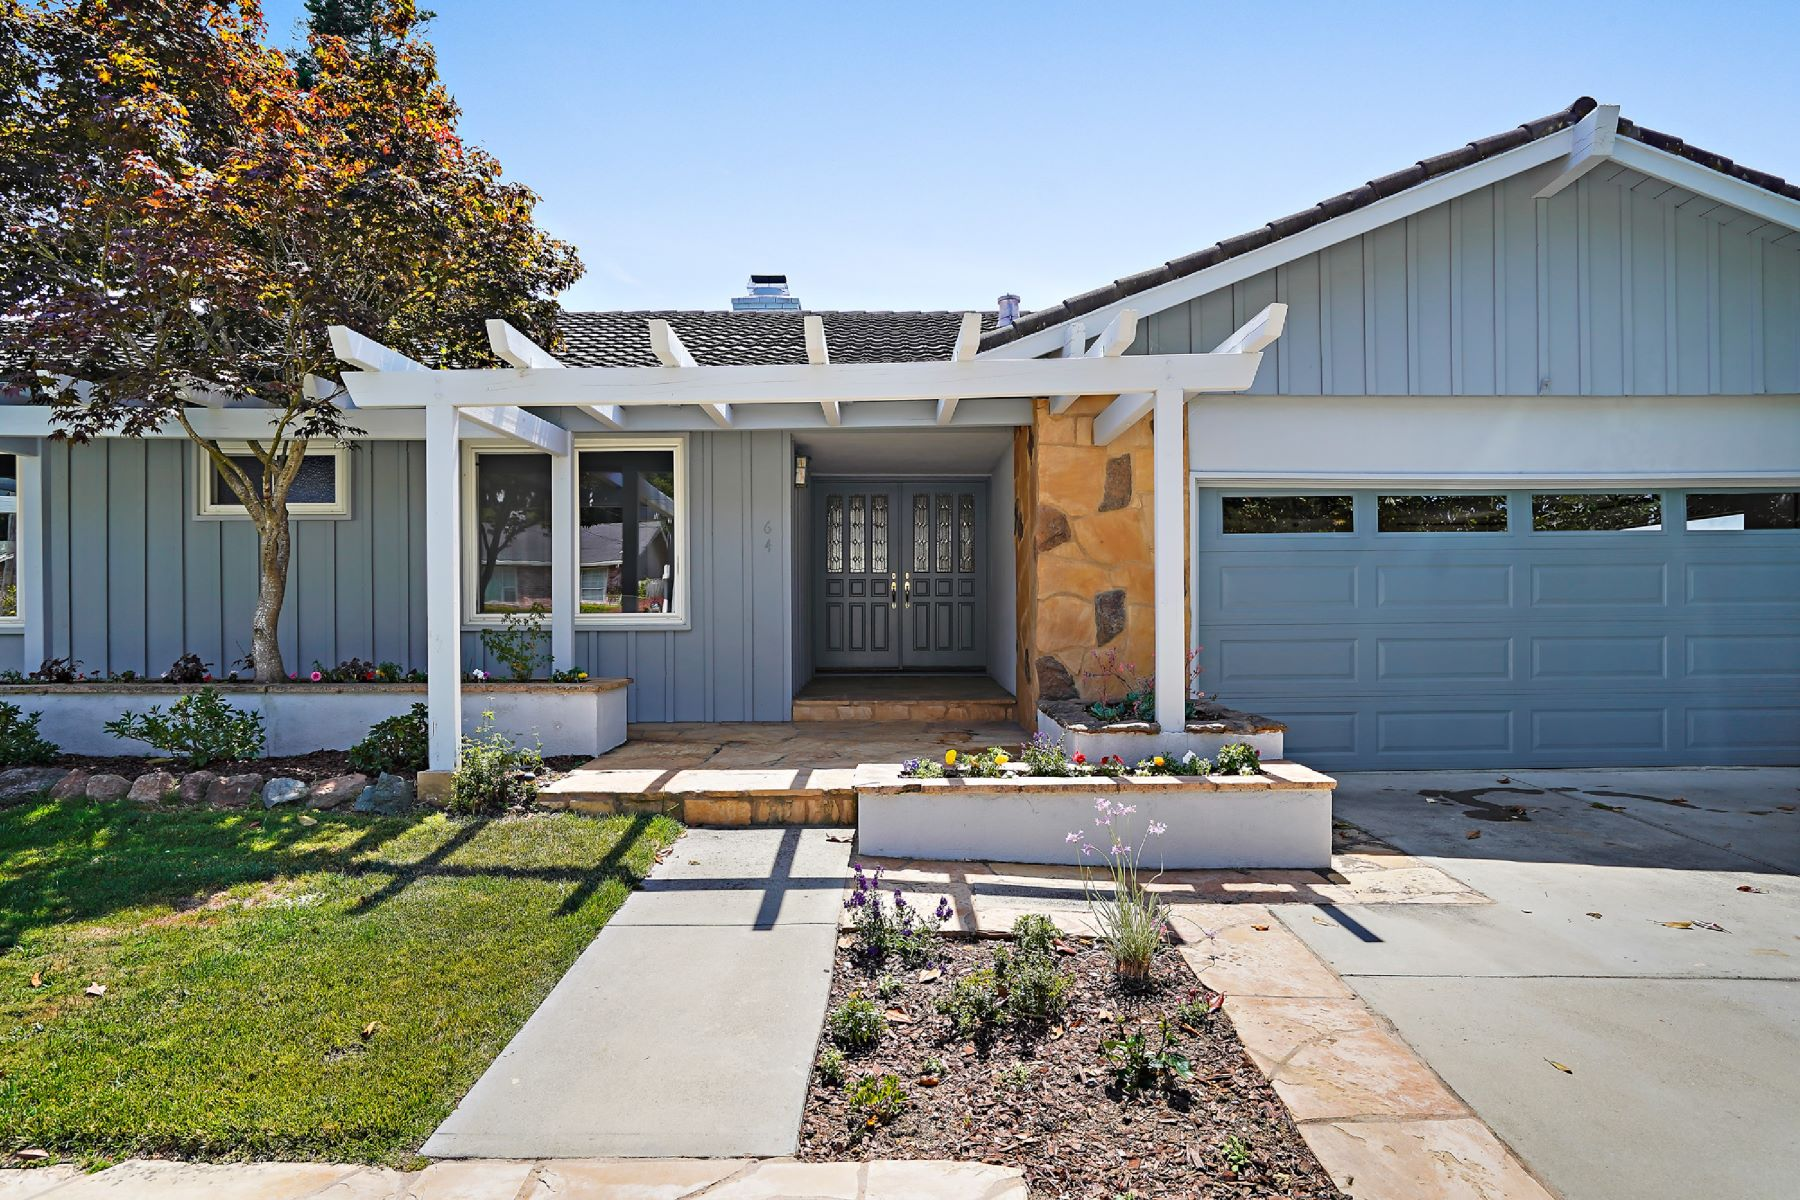 Single Family Homes for Active at 64 Valley View Court, San Mateo 64 Valley View Court San Mateo, California 94402 United States